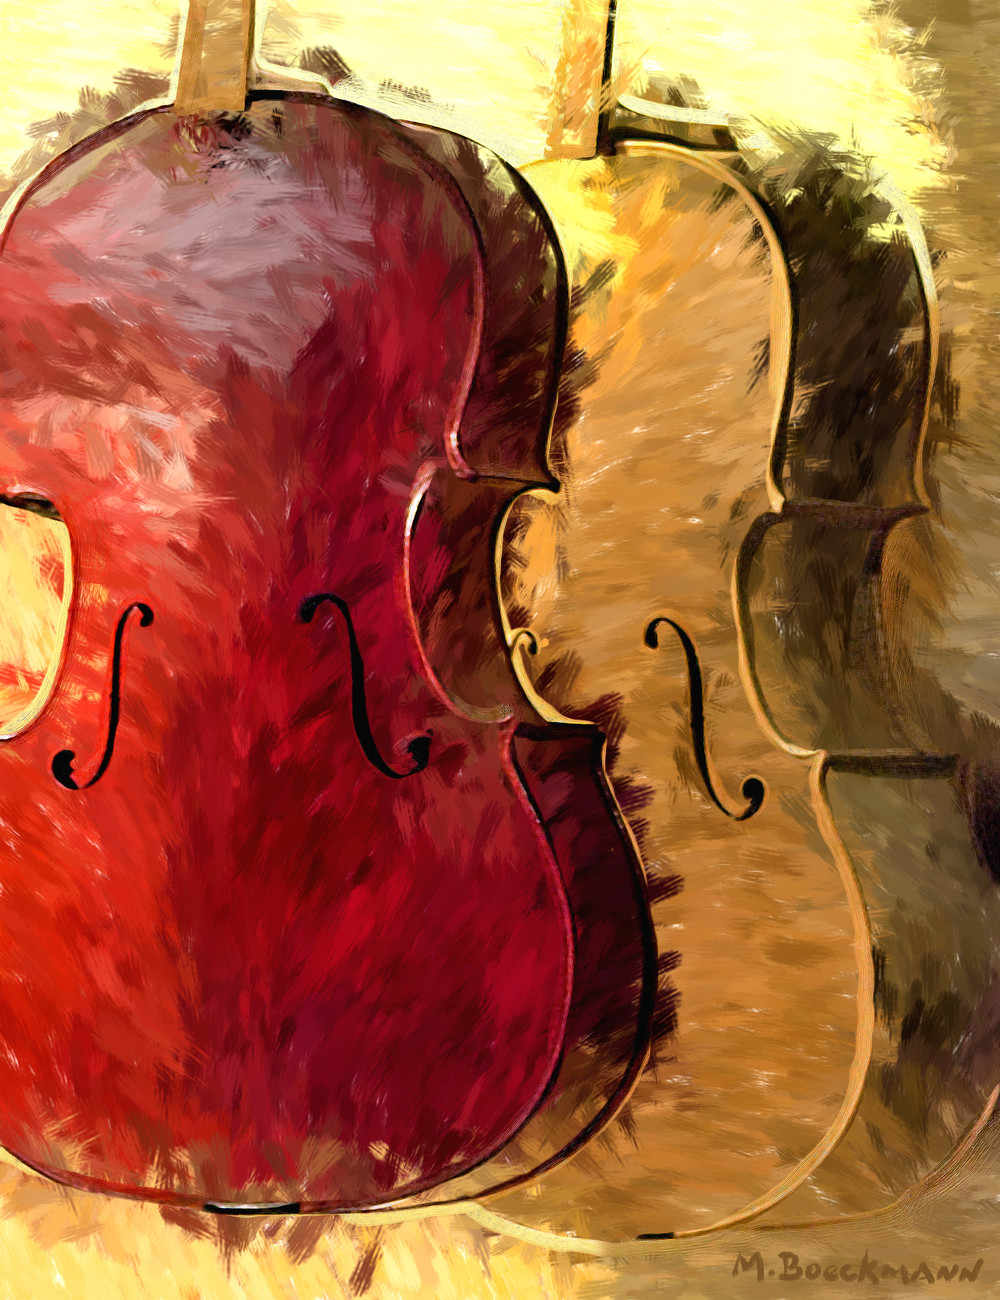 Cello Framed 11.14.jpg